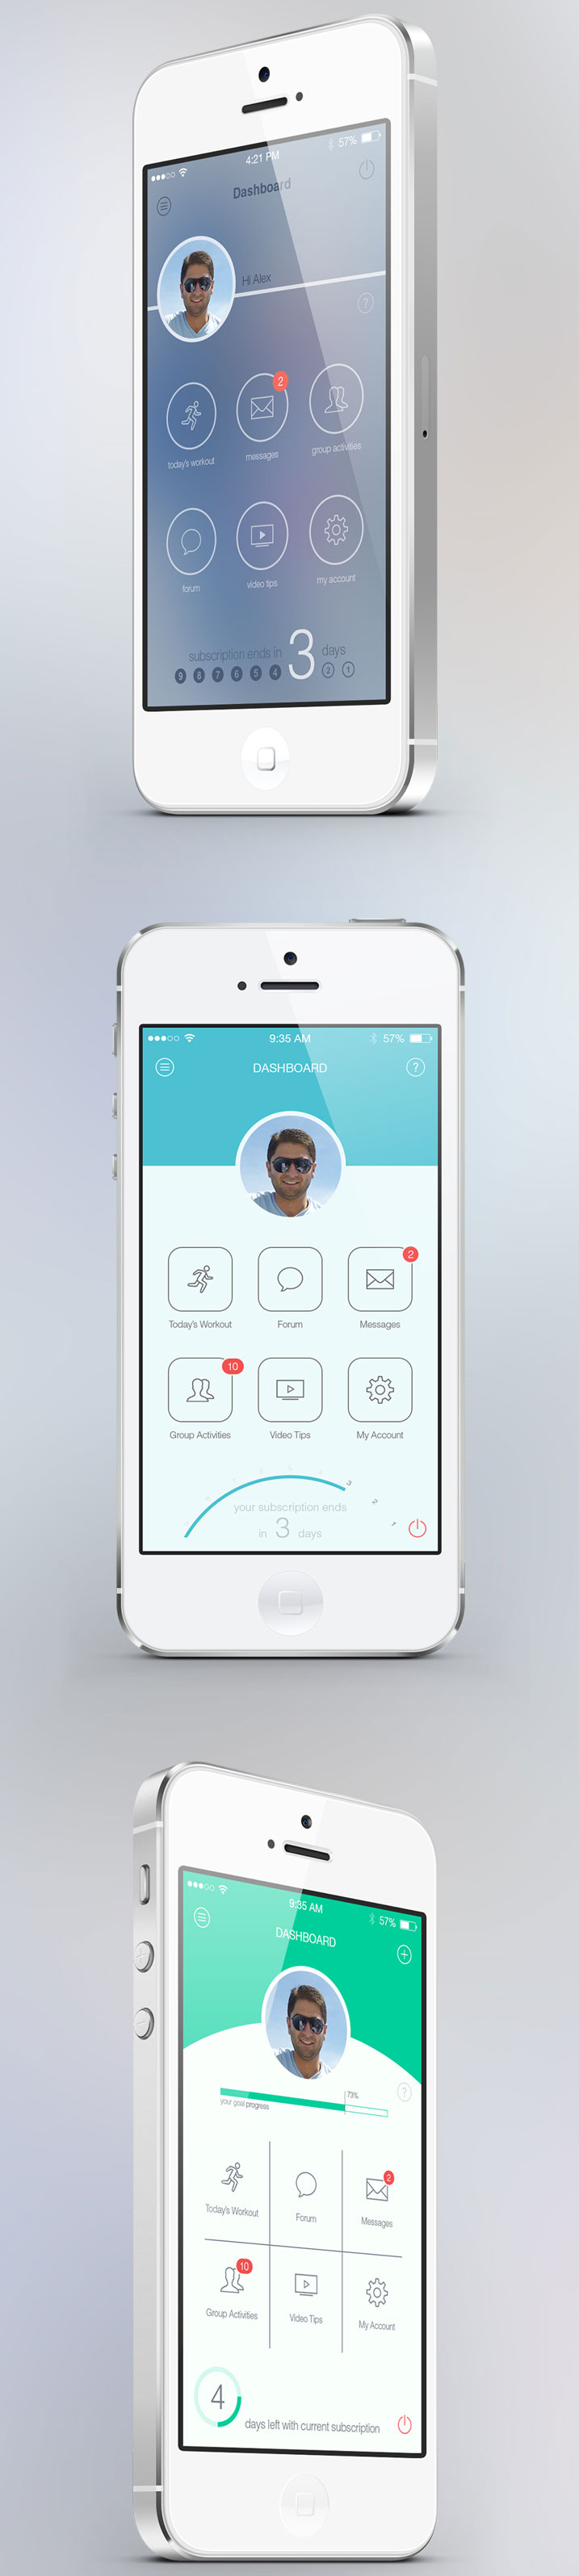 Fitness-App-uygulama